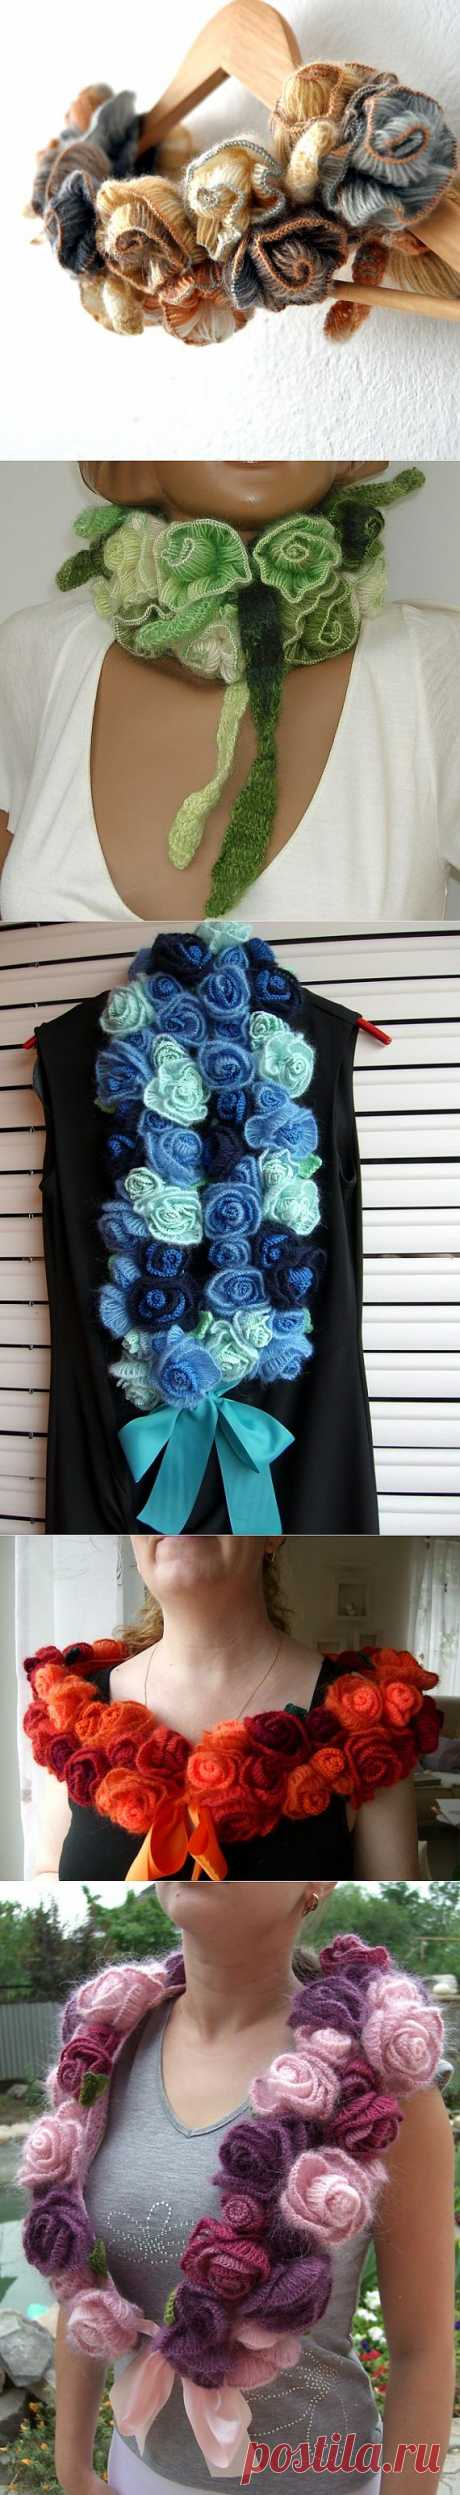 Scarf from roses.